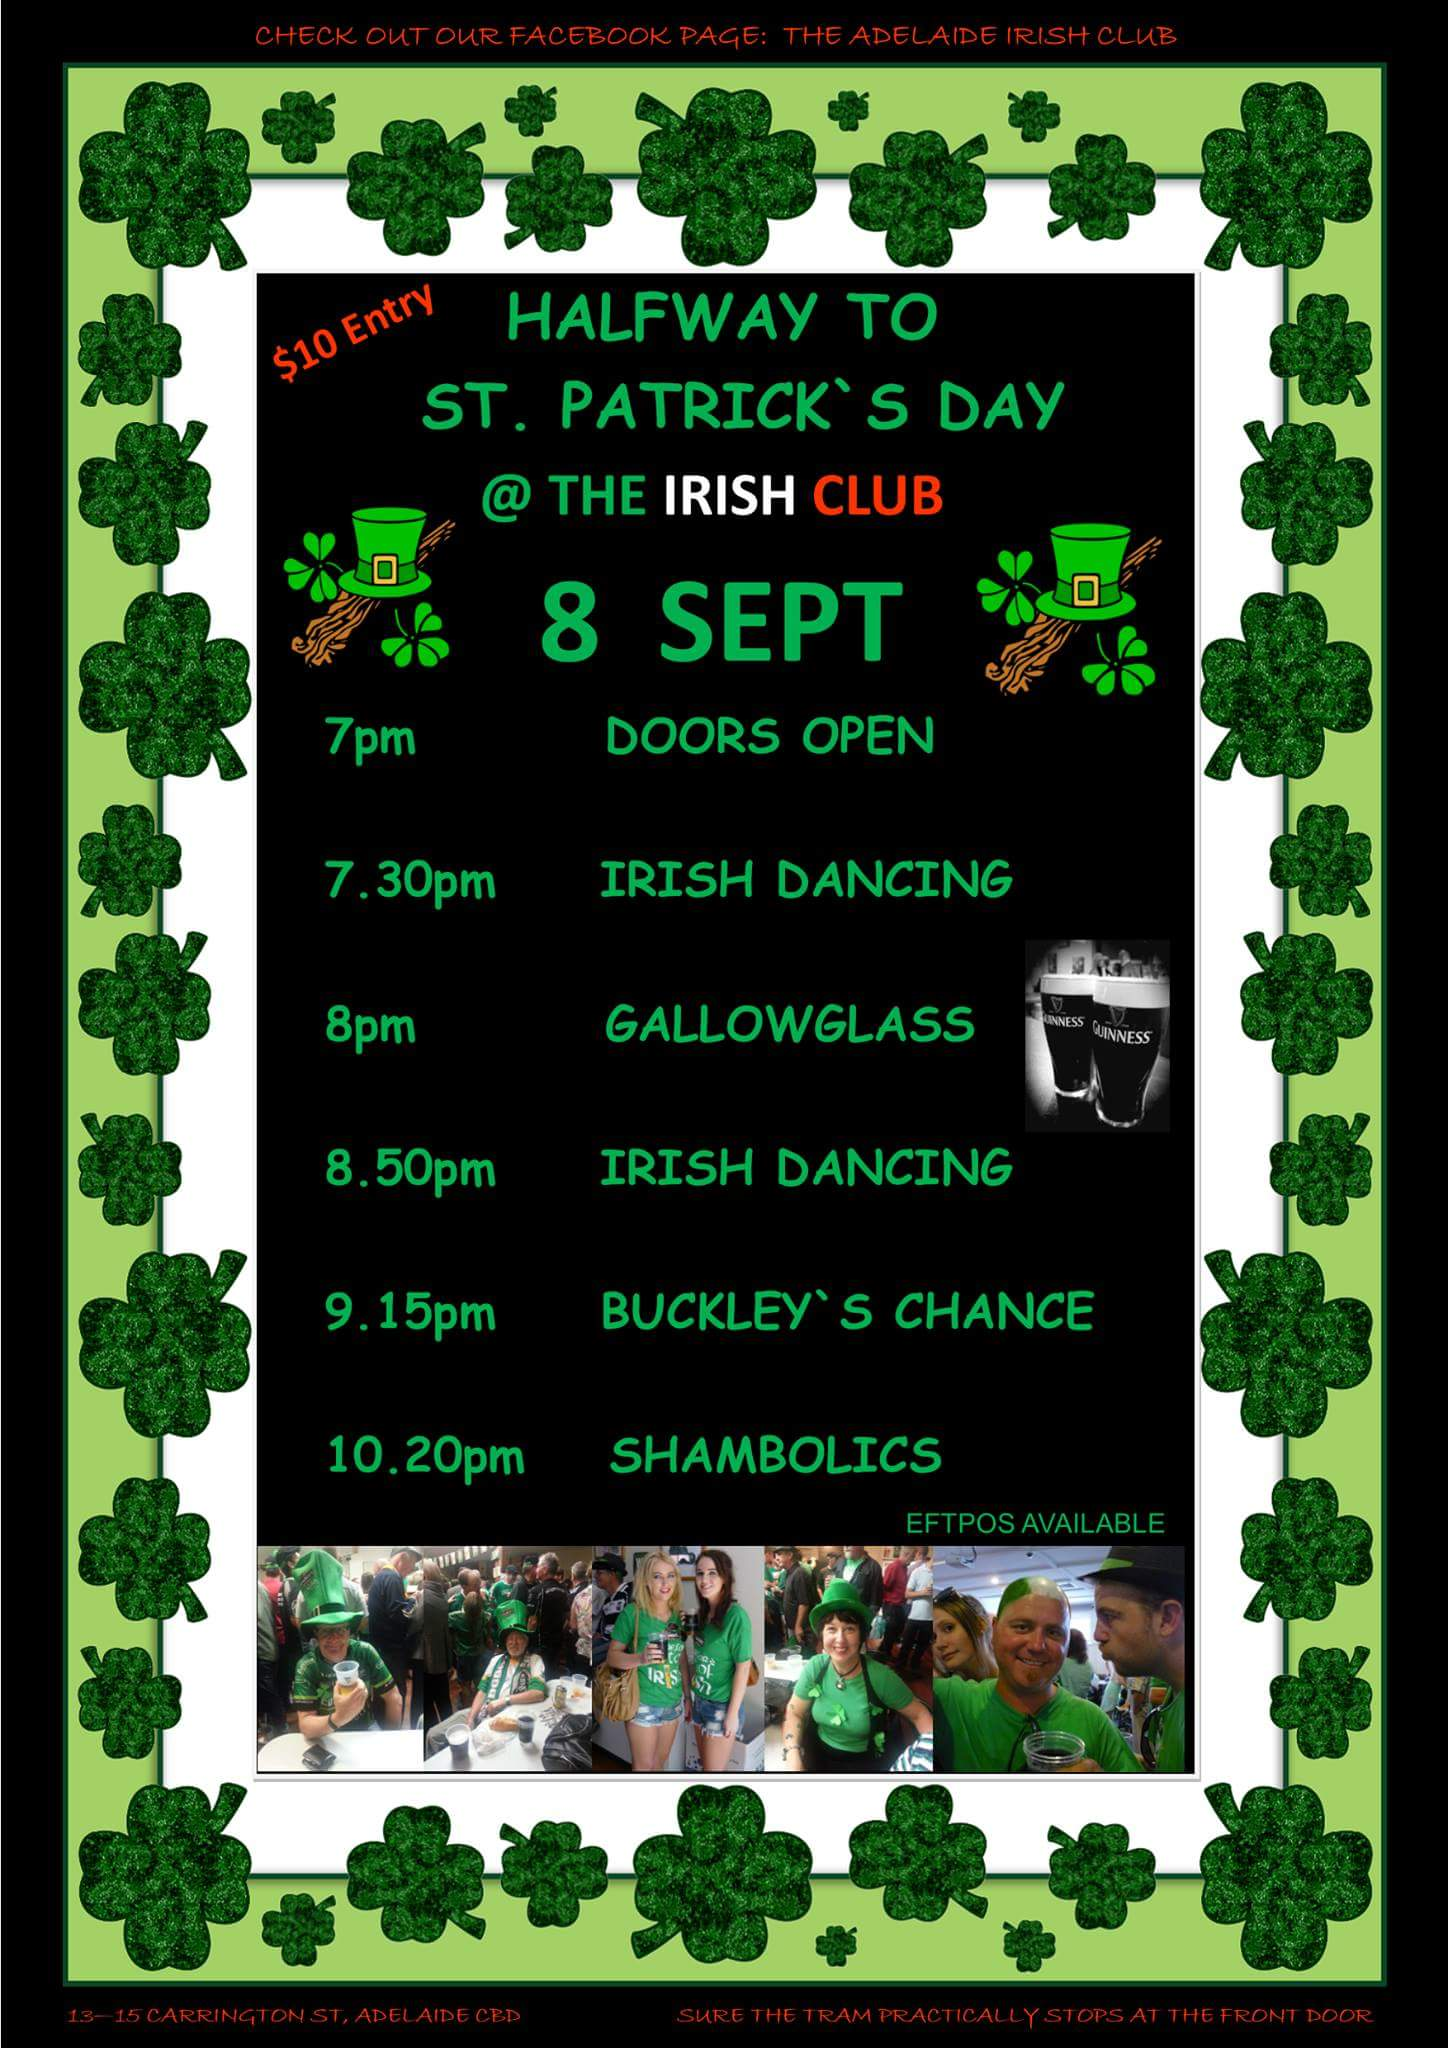 Halfway to St Pats..Music Bands & Dance